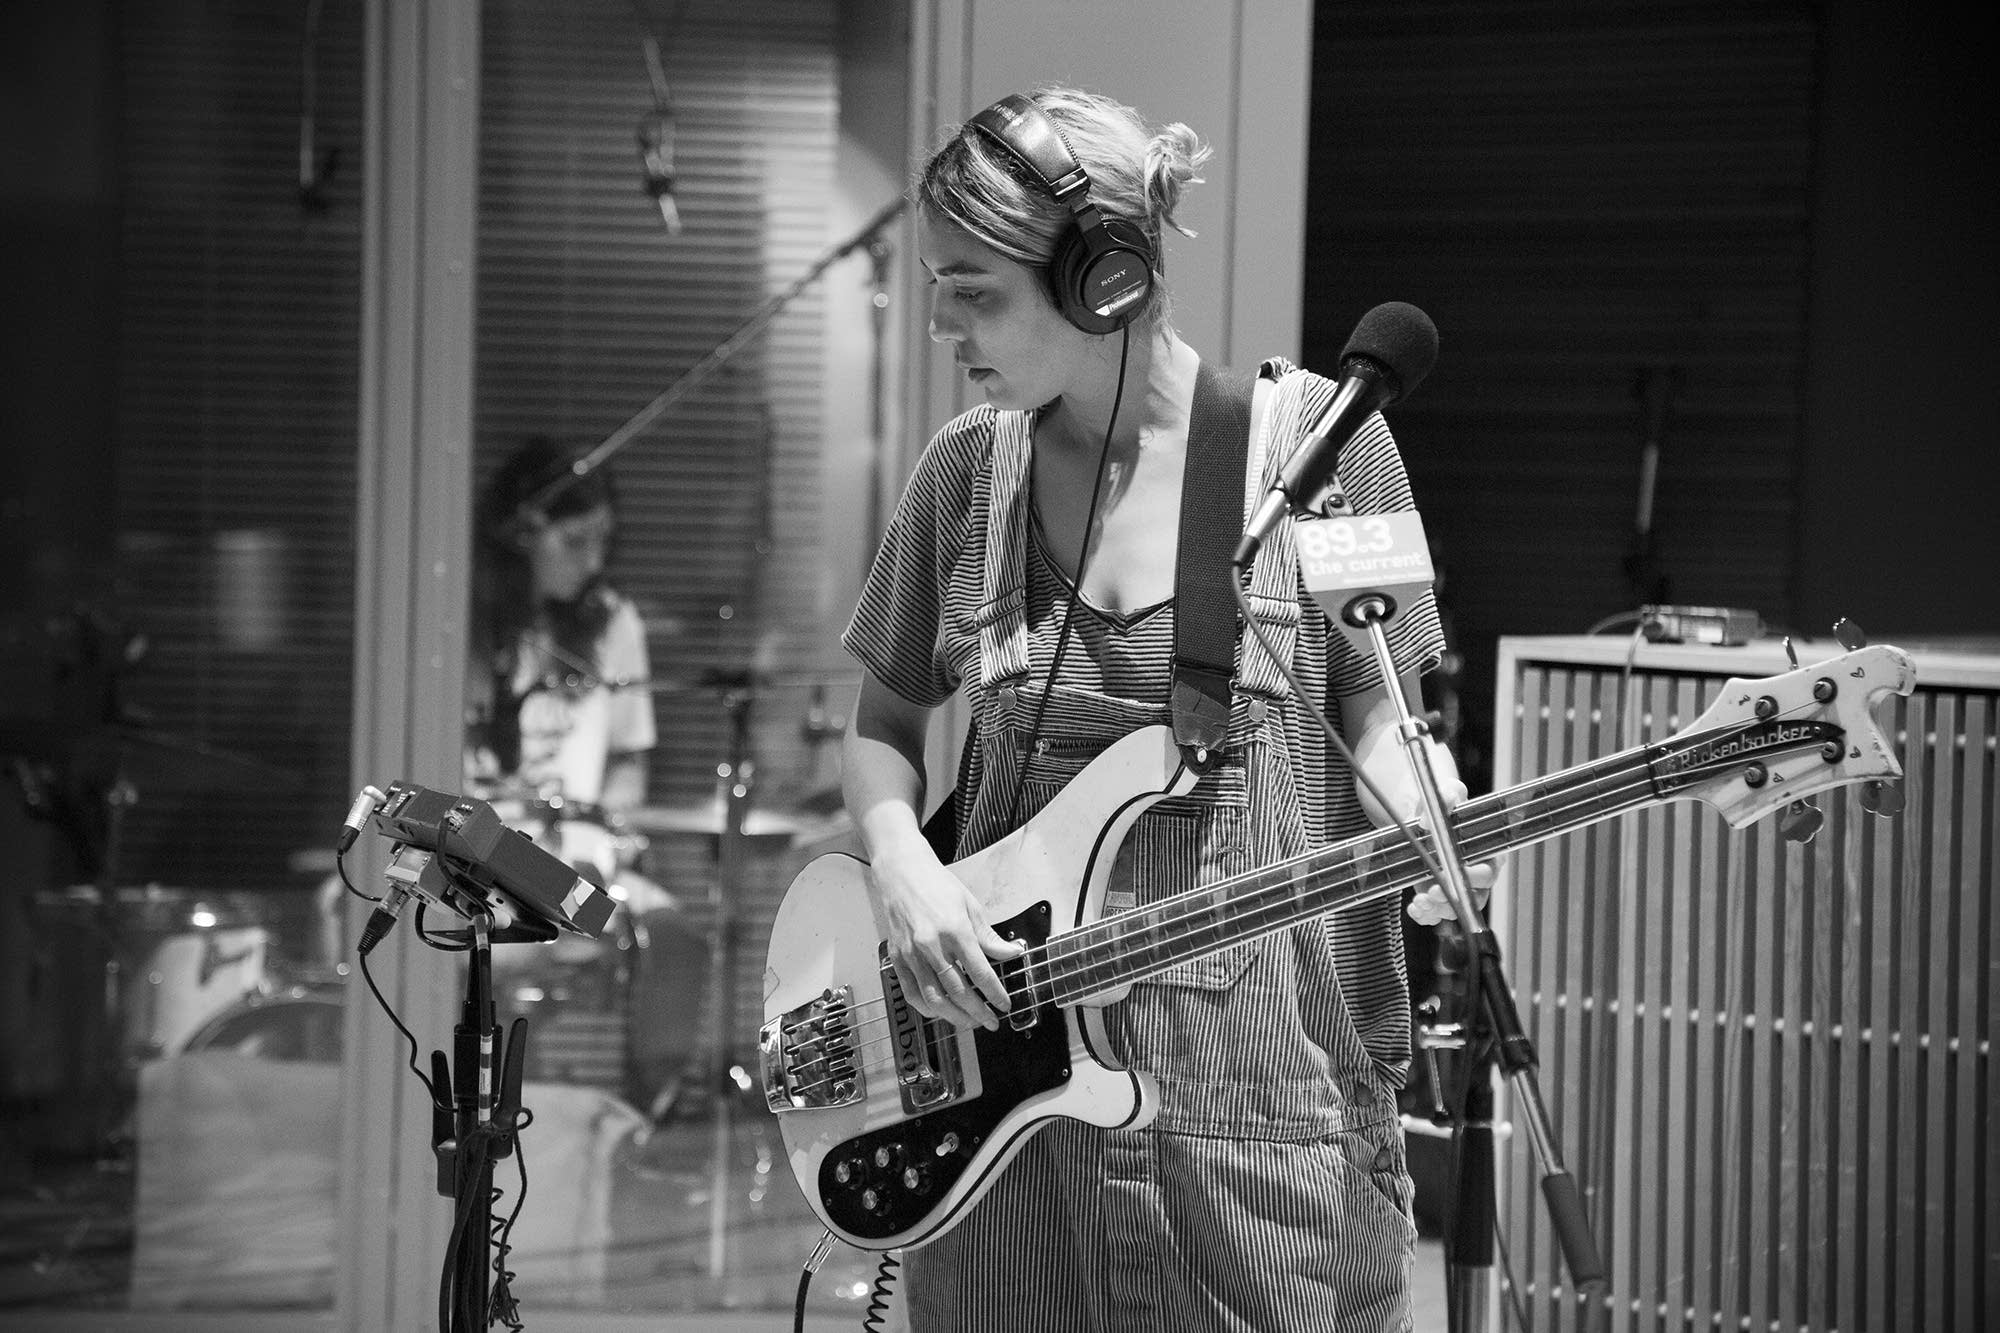 Warpaint perform in The Current studio | The Current